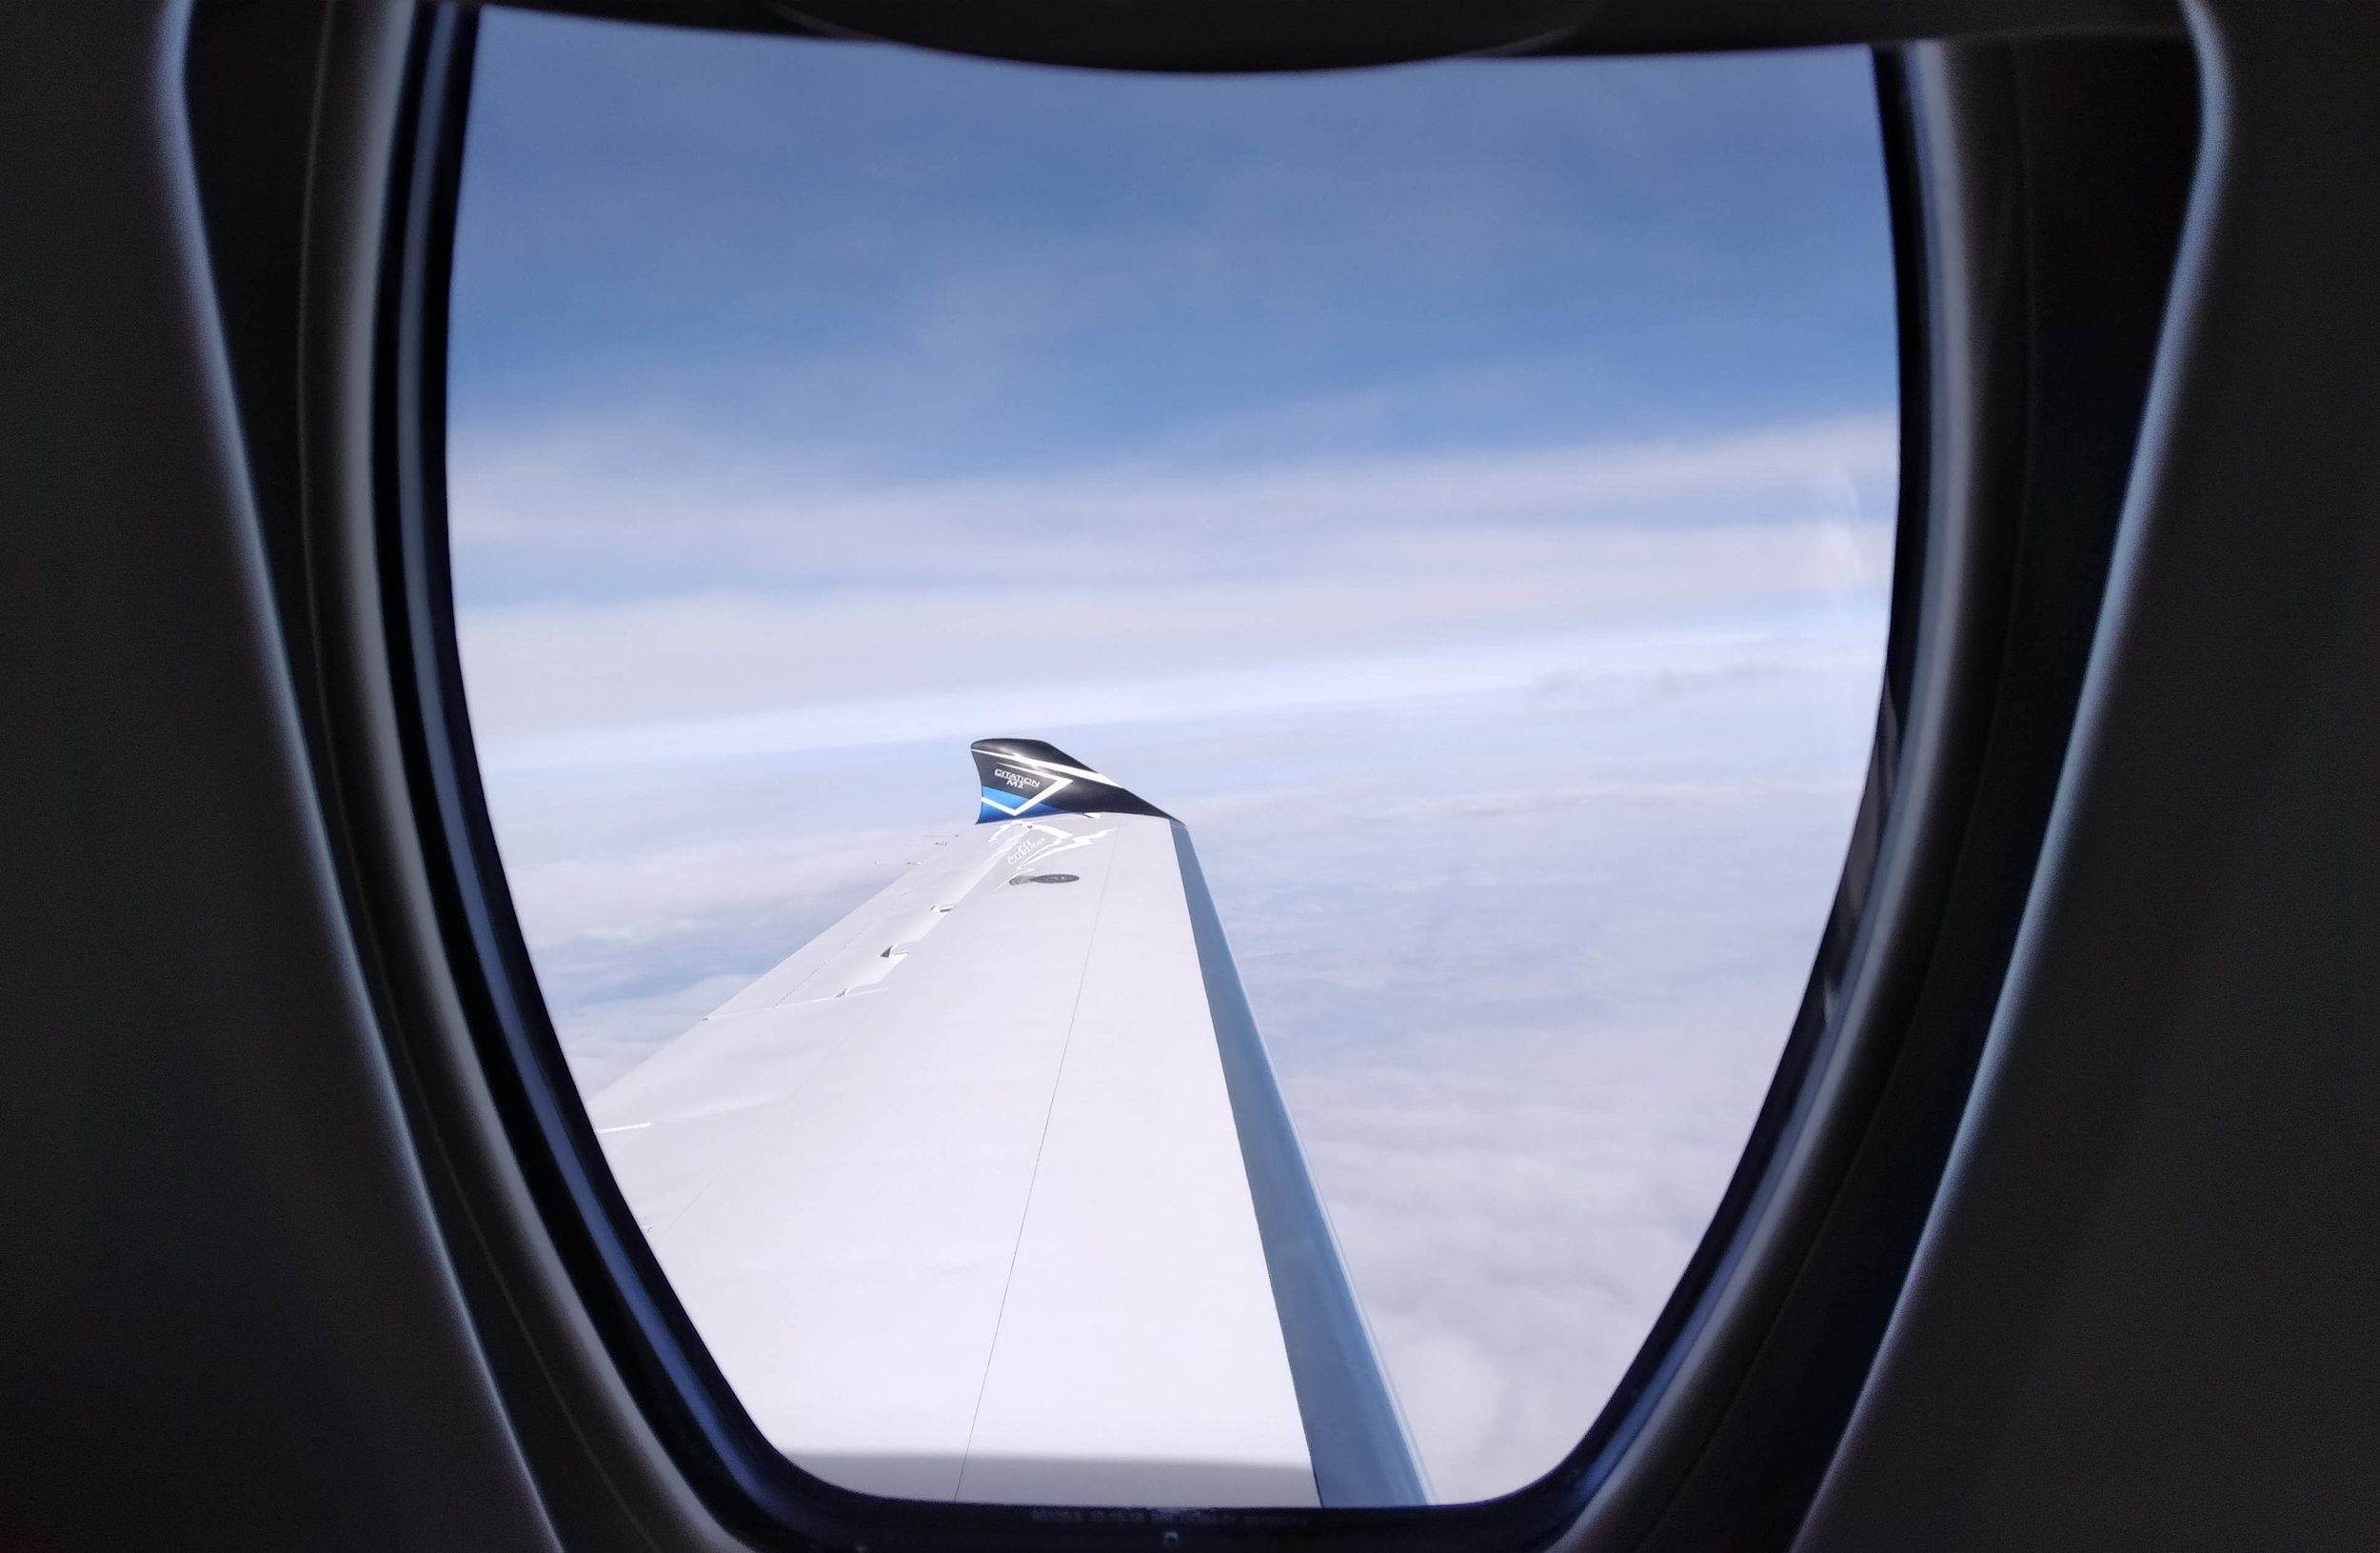 Looking out the uniquely-shaped Citation M2 window as we cruise comfortably above most commercial air traffic.